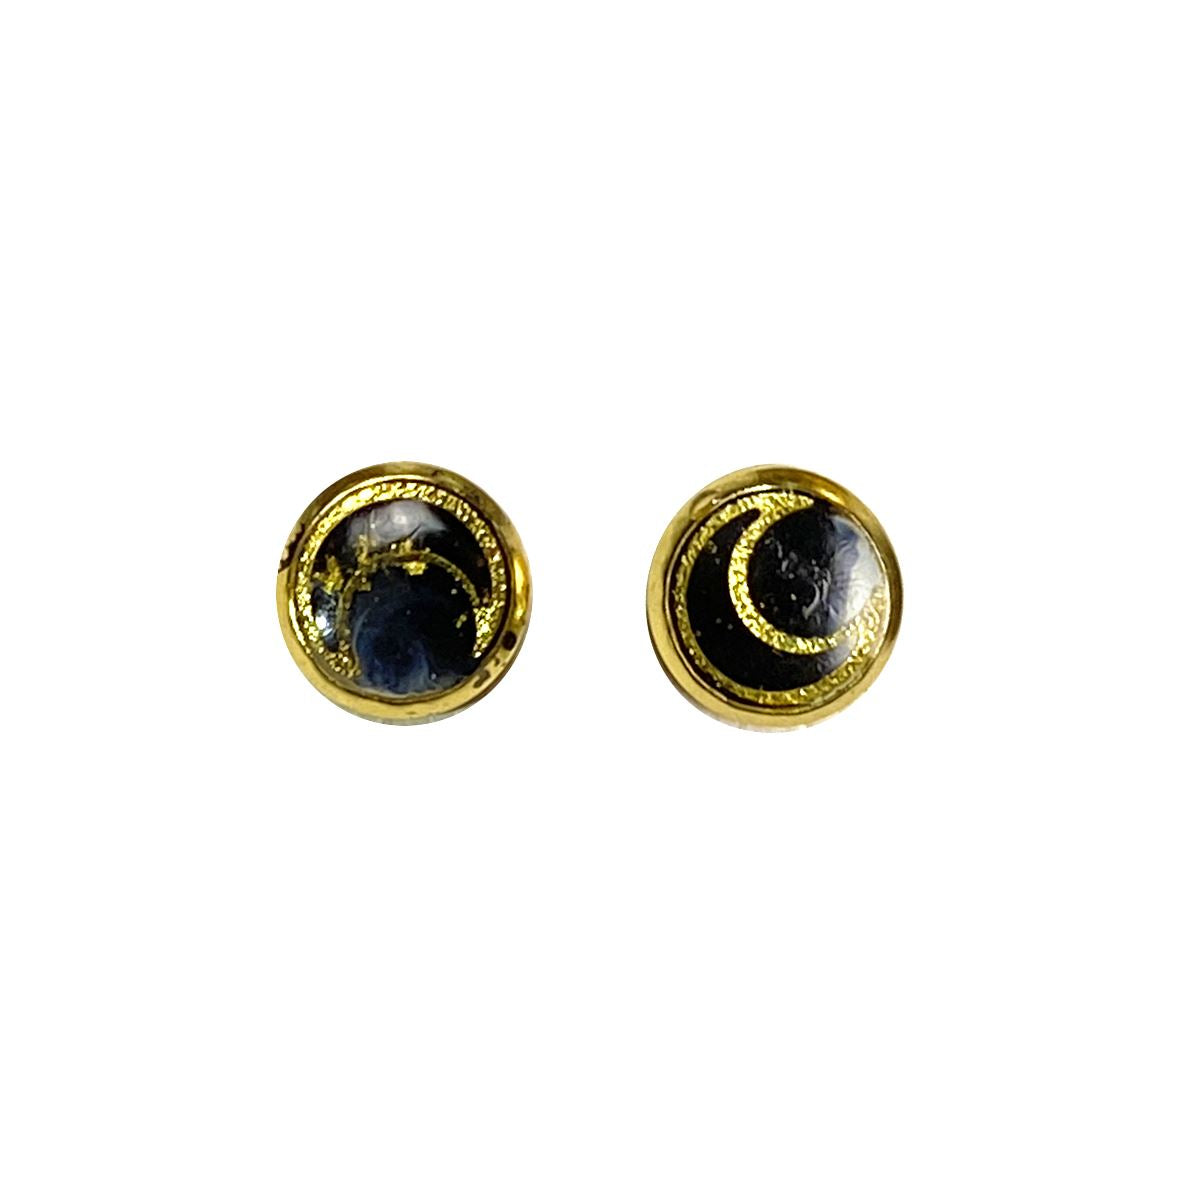 Celestial - moons gold 8mm stud earrings Deanna Dot Store